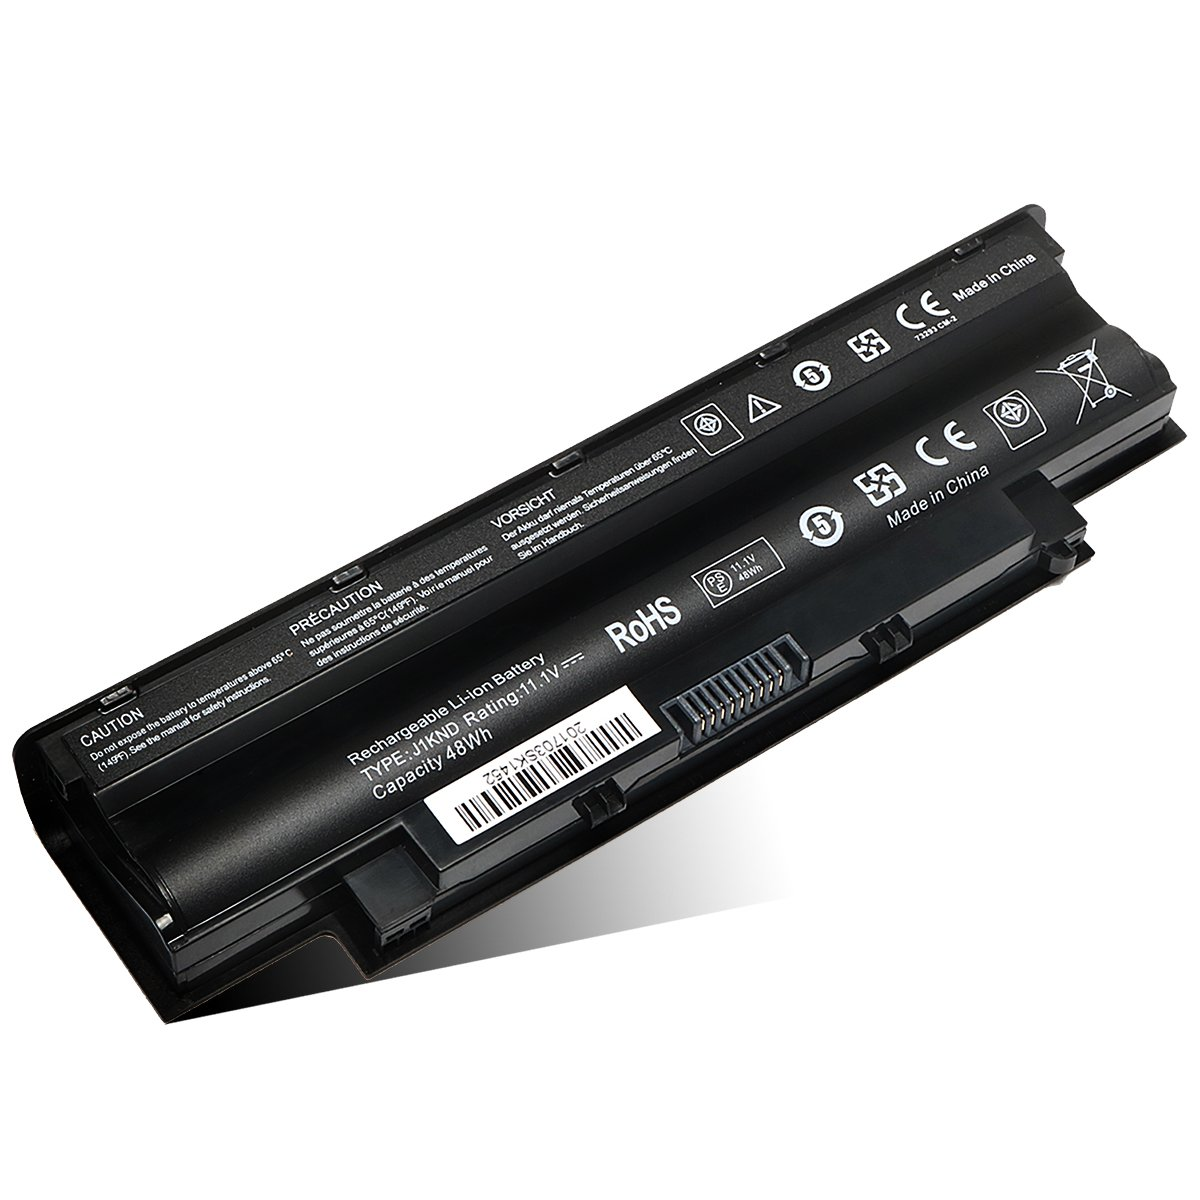 New Replacement Laptop Battery for Dell Inspiron 13R N3010 N3110 14R N4010 N4110 N4050 15R N5010 N5110 N5030 N5040 N5050 17R N7010 N7110 P/N: J1KND TKV2V 4T7JN W7H3N 04YRJH 06P6PN -- 12 Month Warranty